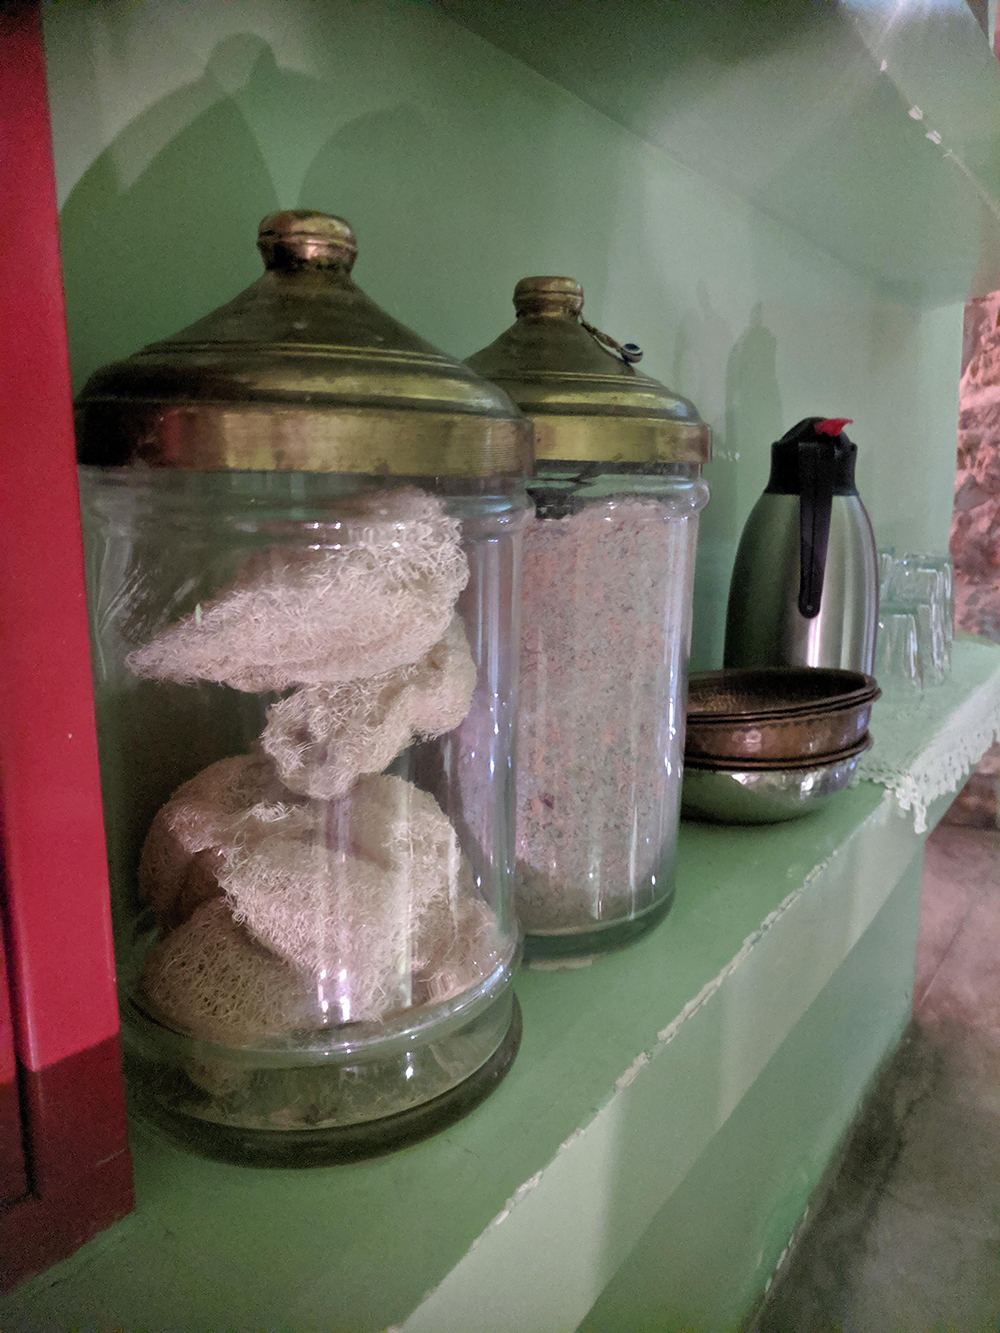 Supplies used in the Traditional Hammam service are on display in the spa.